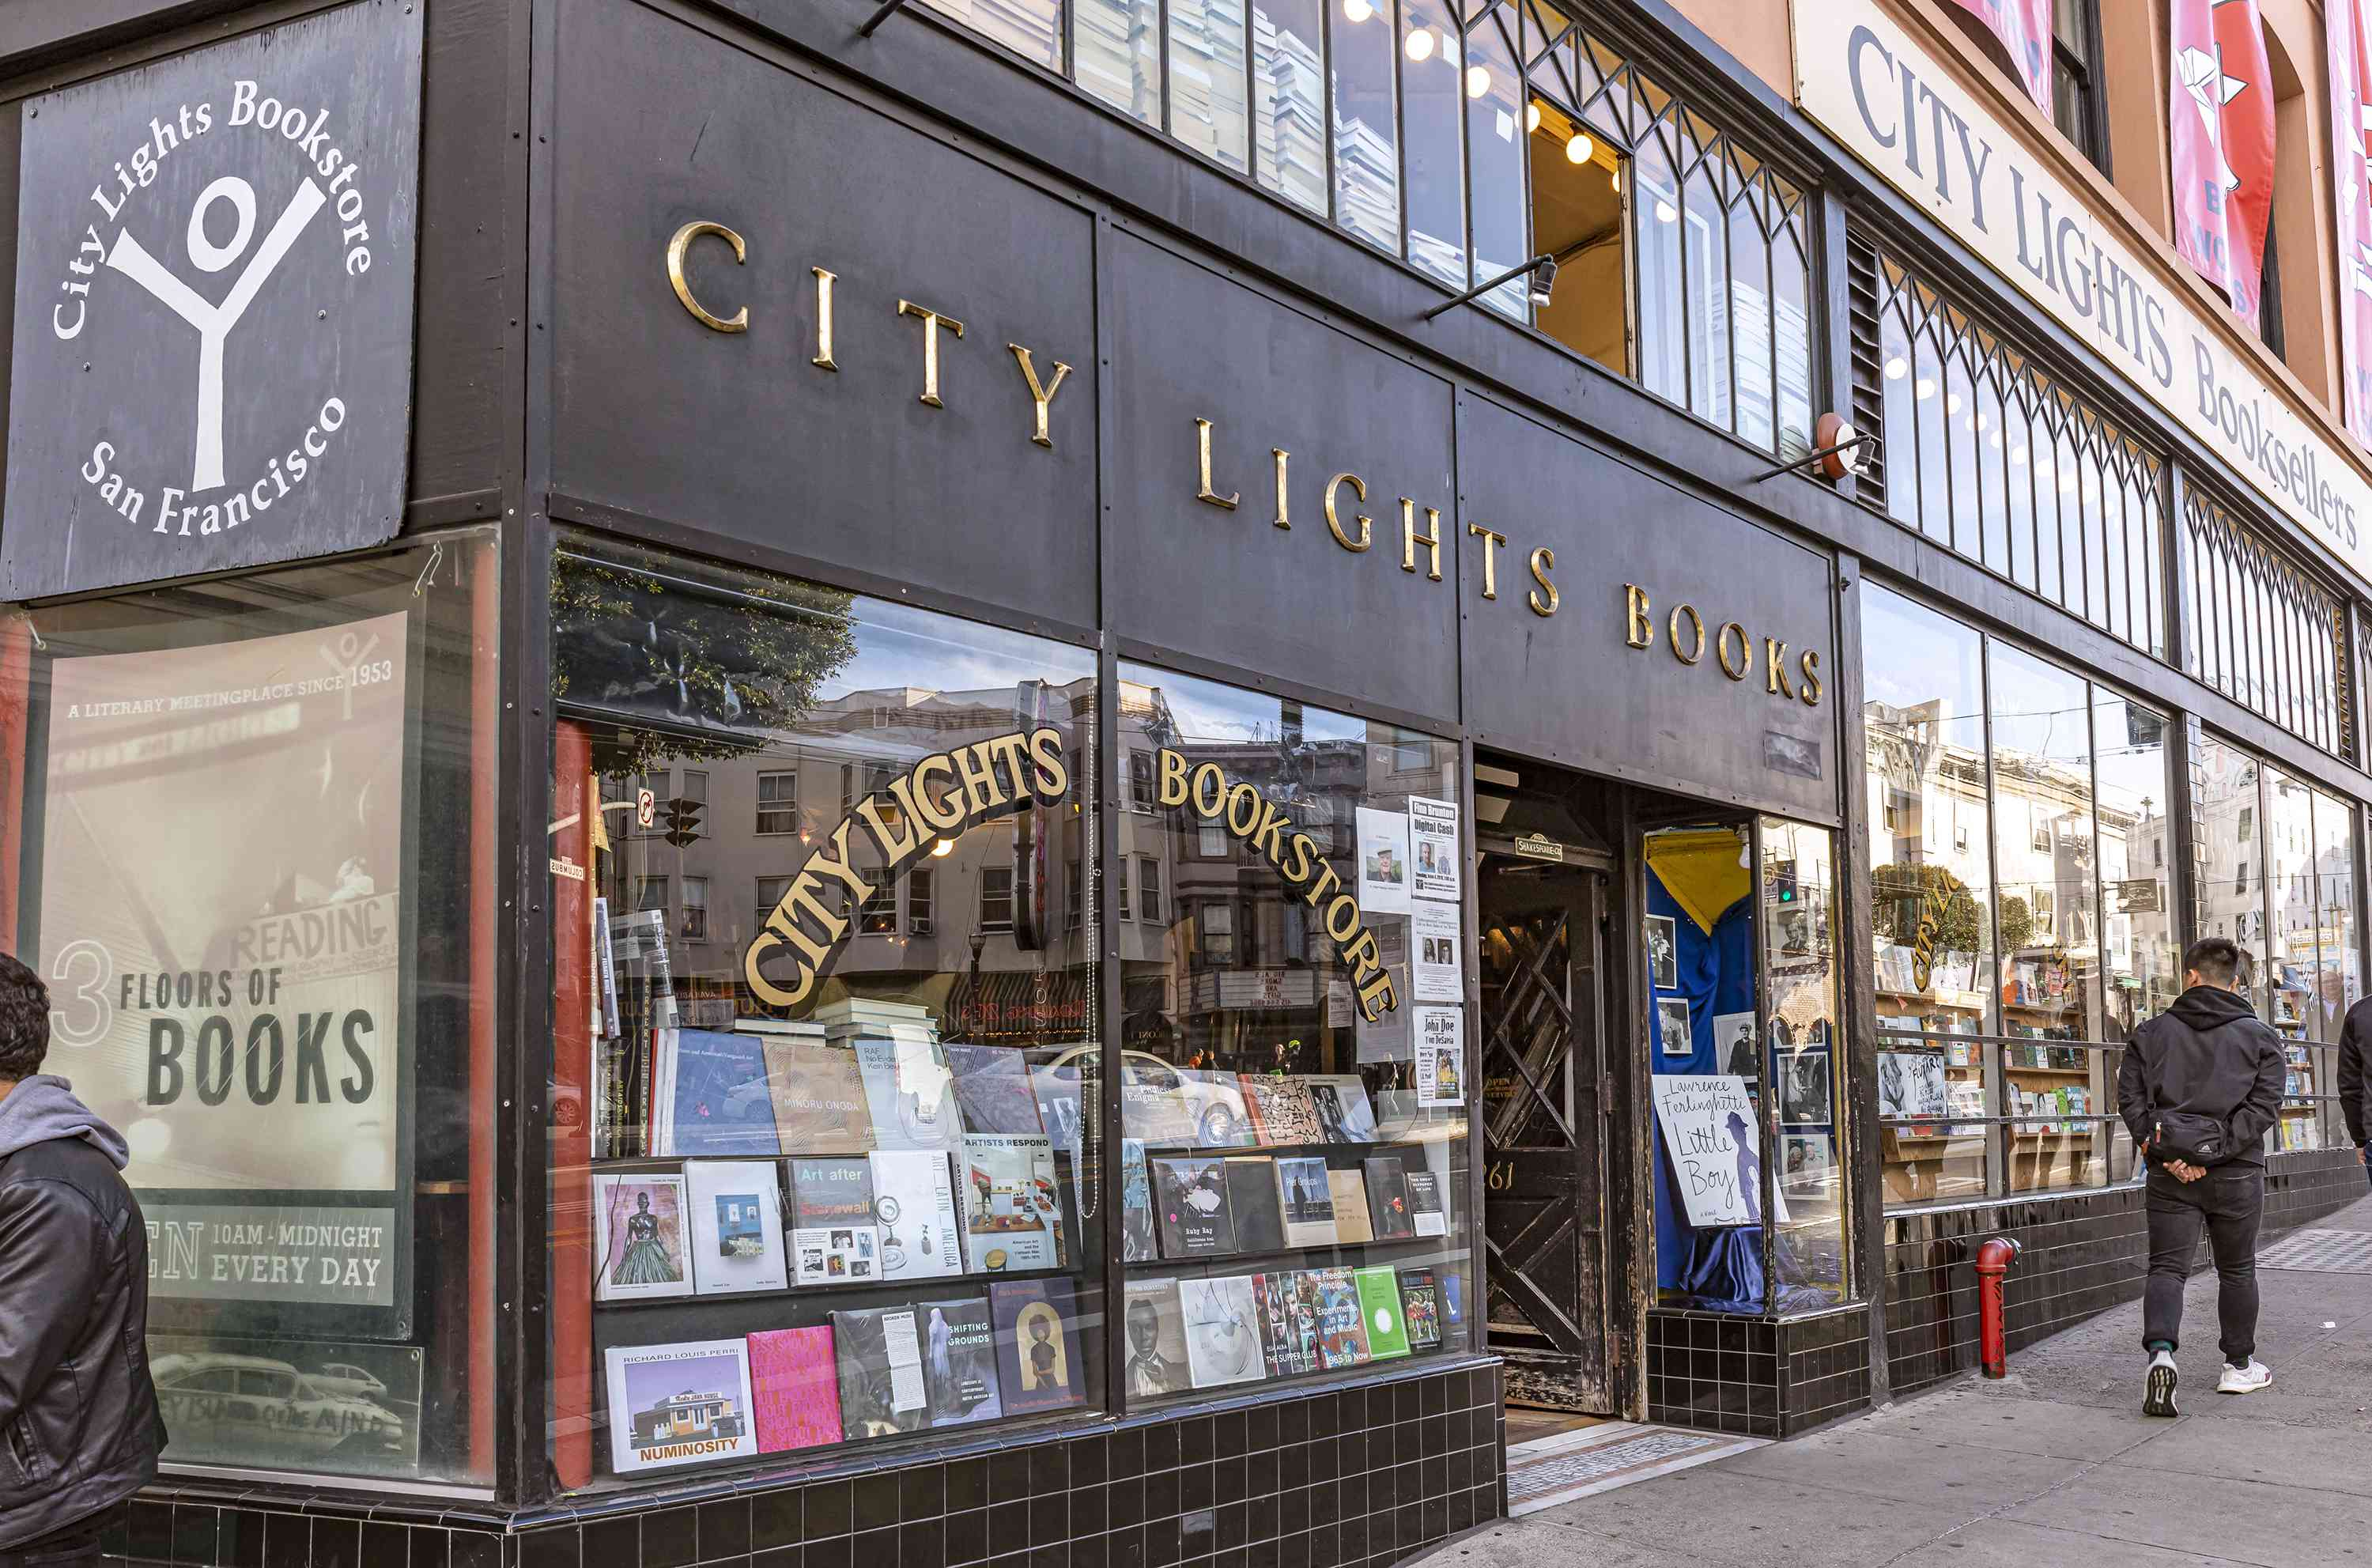 The exterior of City Lights Books